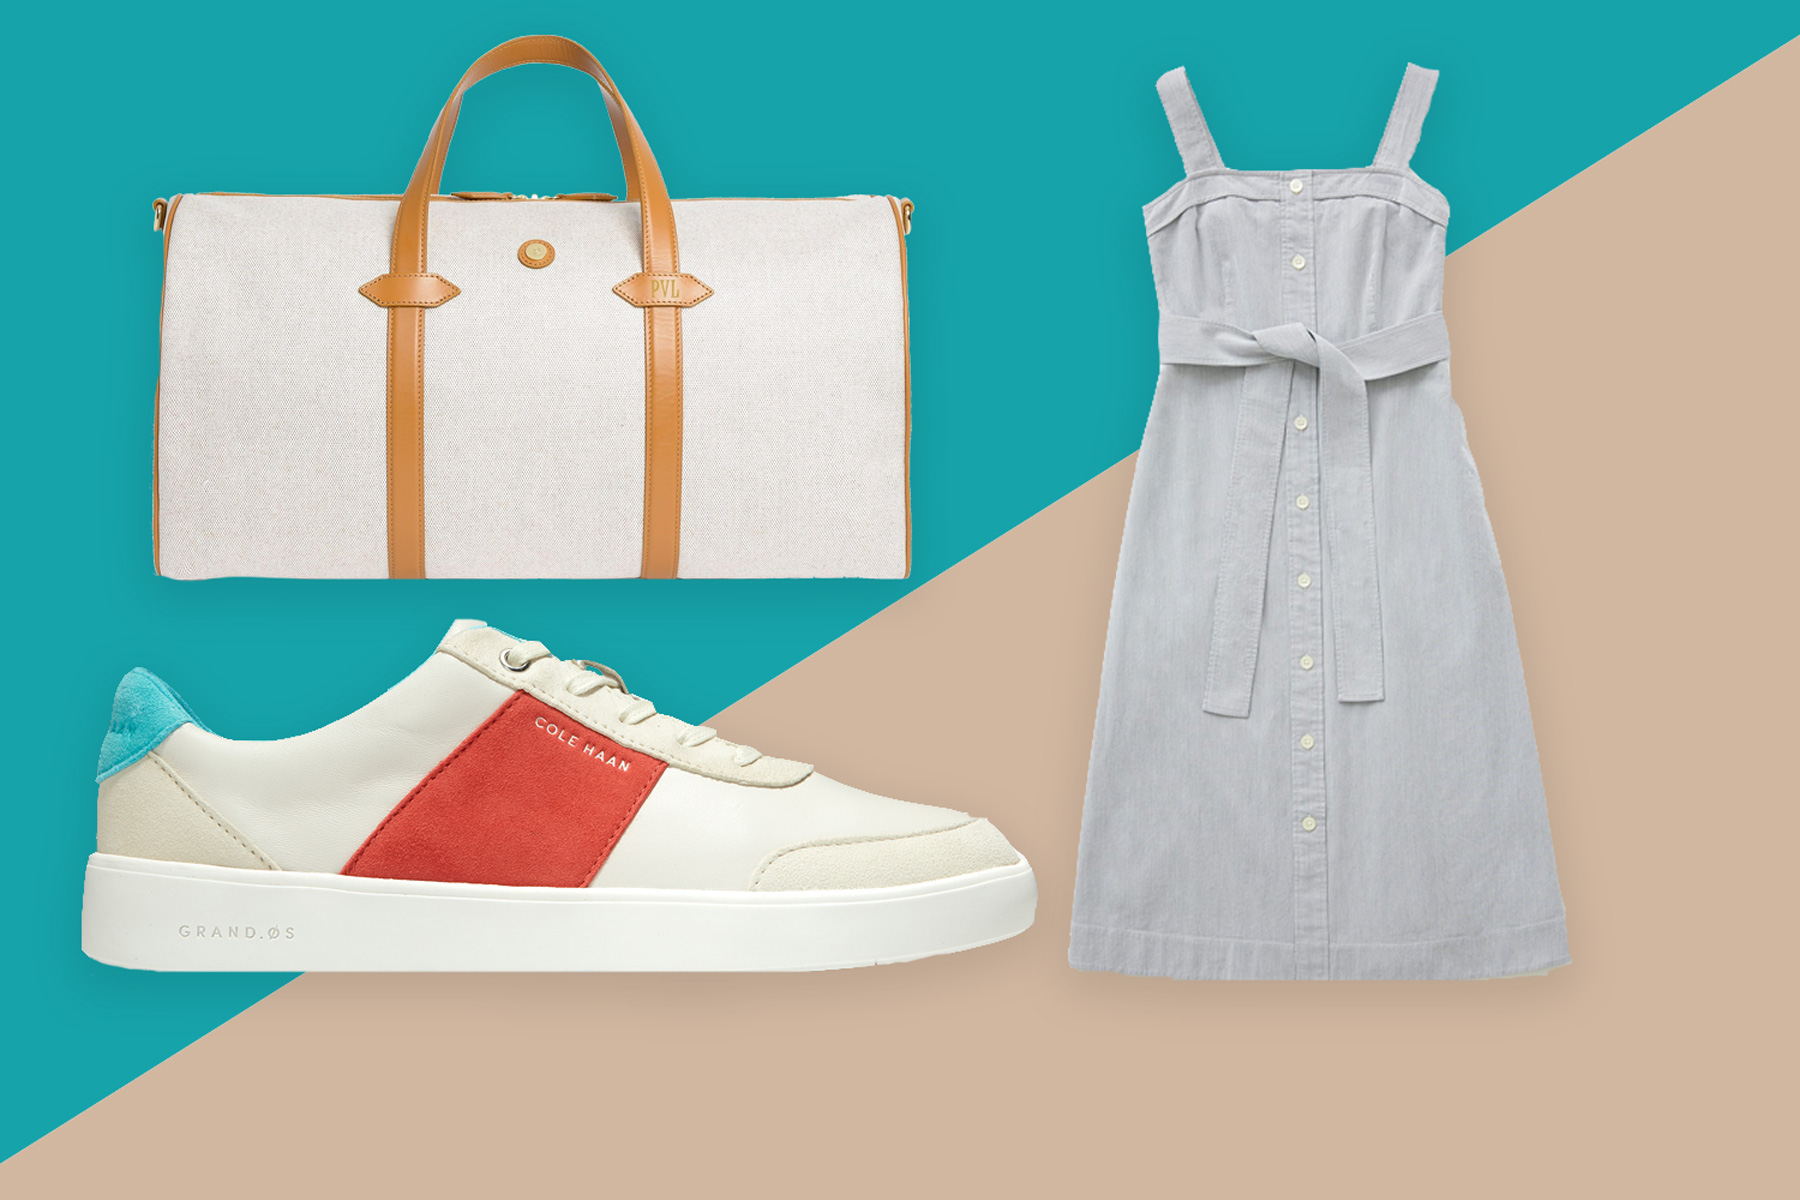 Dress, sneakers, and duffel bag